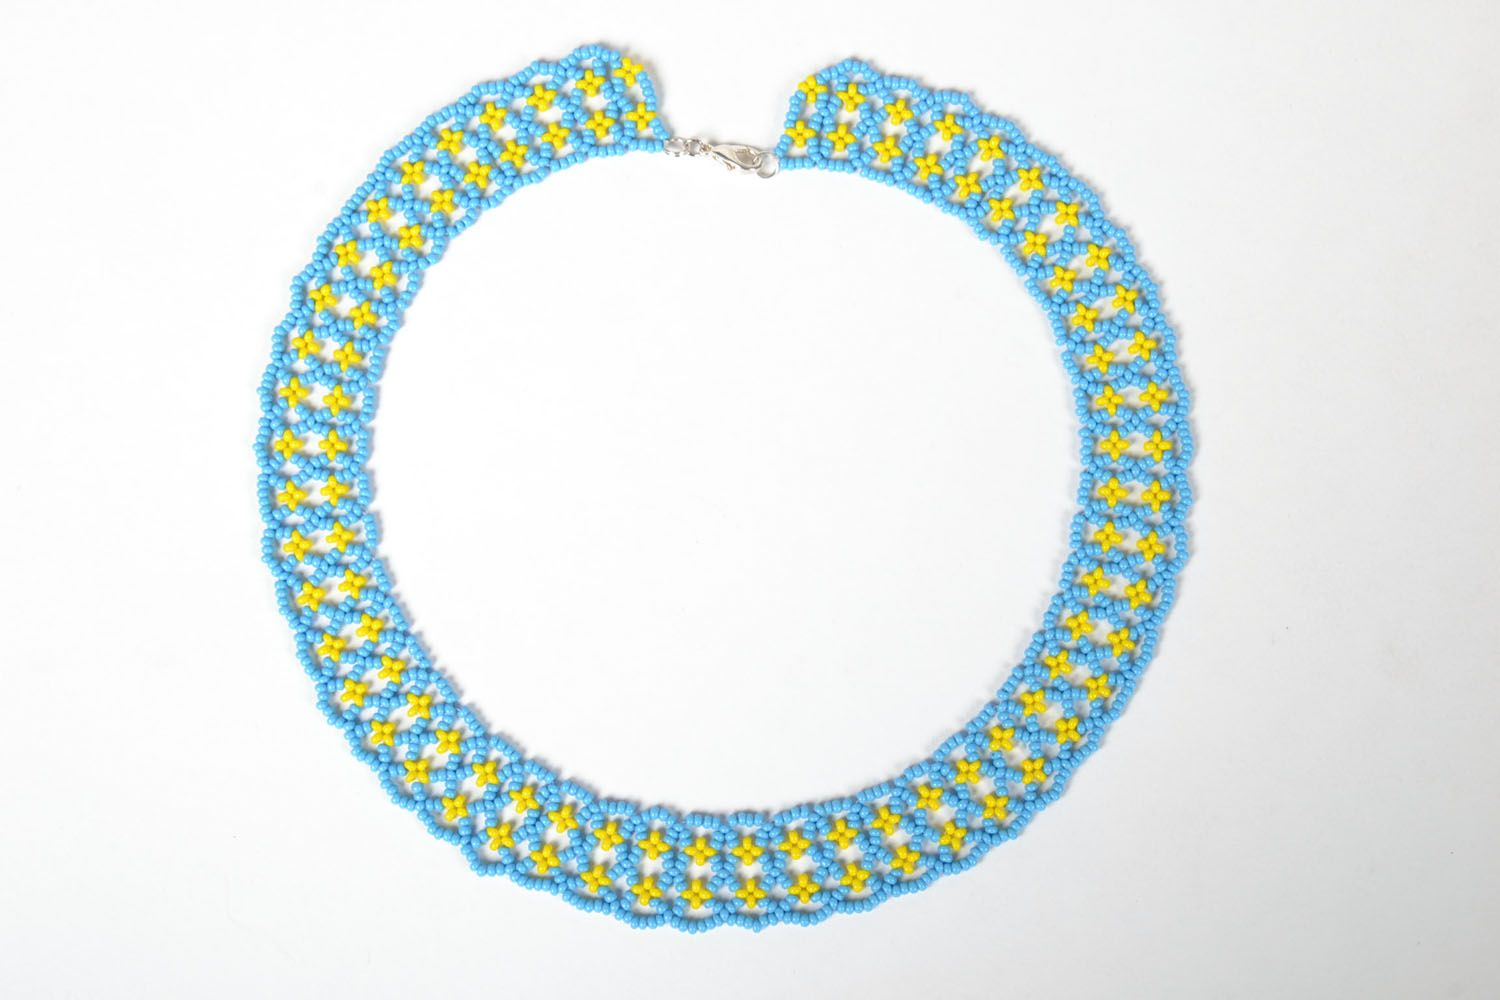 Beaded necklace photo 2